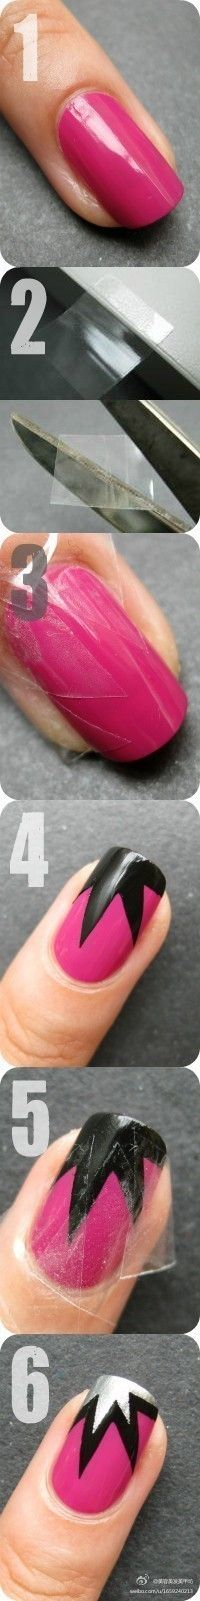 What i'm doing with  my nails next.